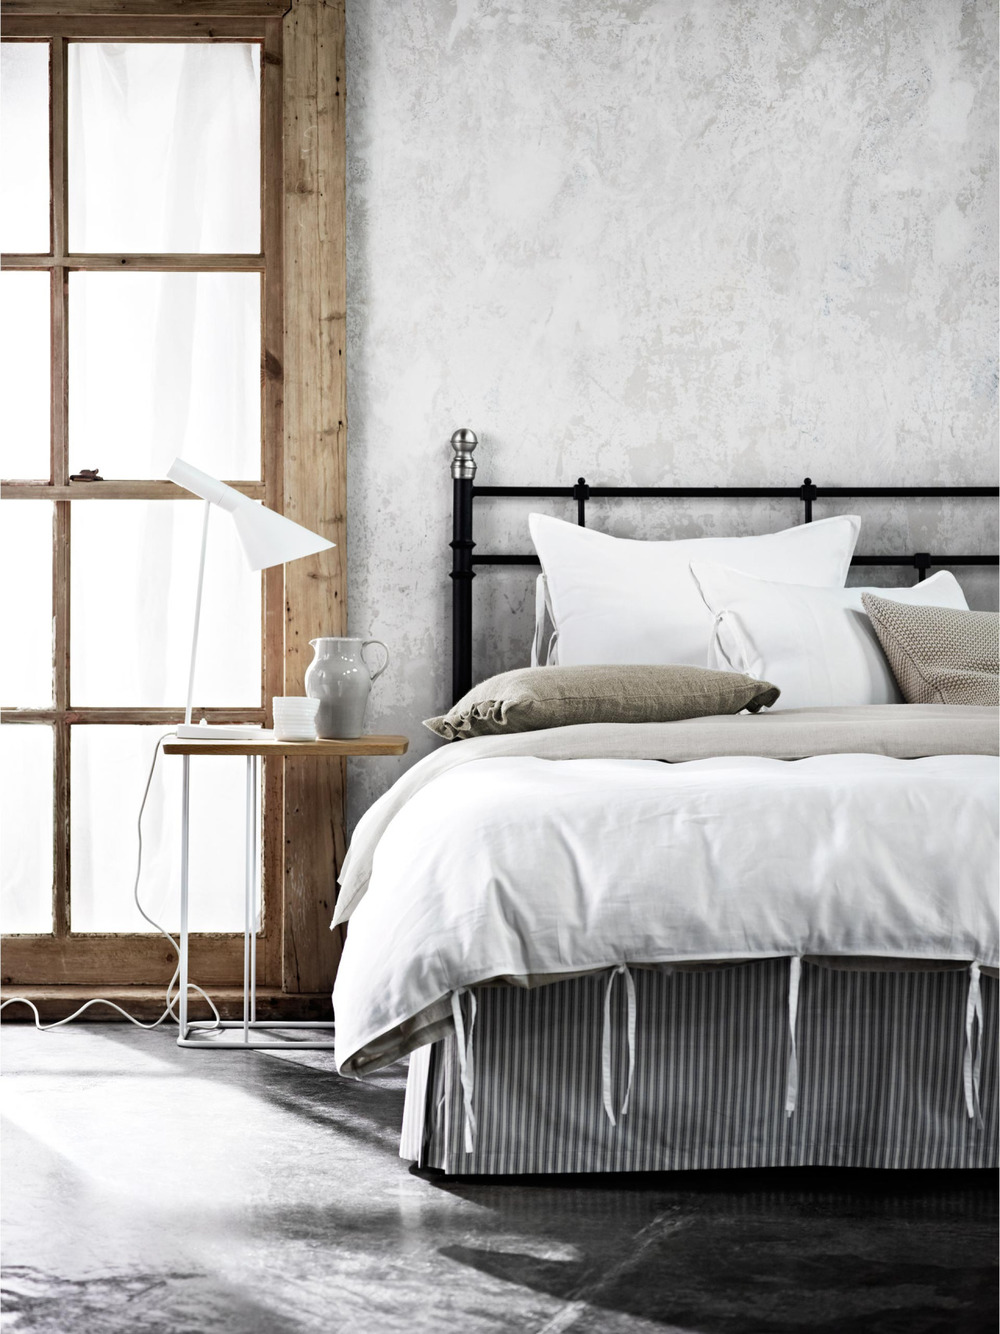 For those who aren't ready to dial it up to a 10, opt for a neutral tone ticking stripe bedskirt over earthy bedding and pillows.  The rustic window frame and nightstand completes the look perfectly.